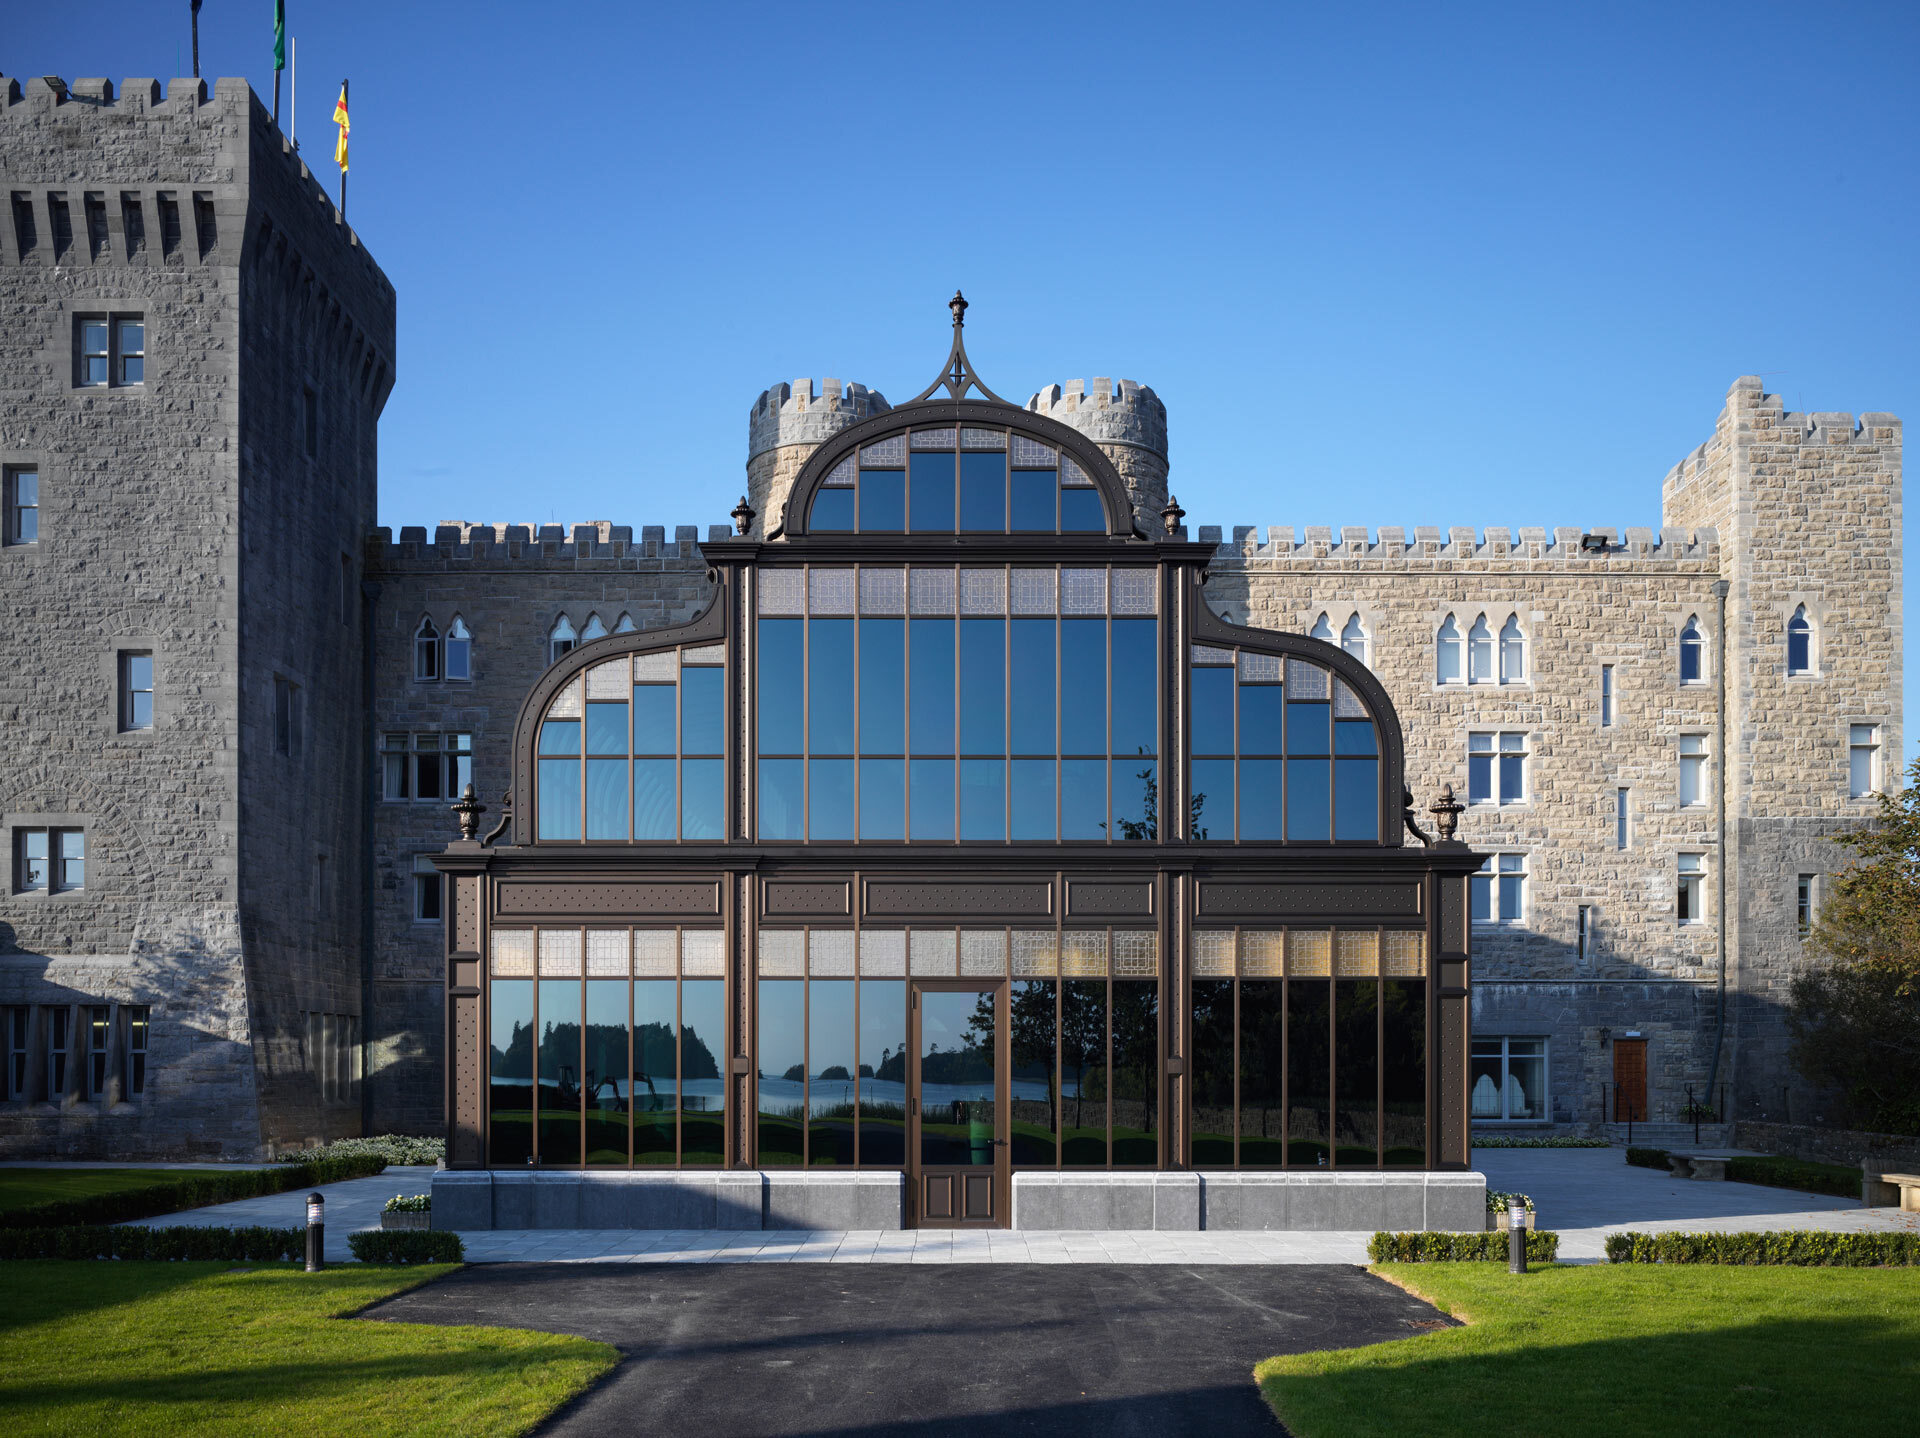 By installing SageGlass® in its spa, Ashford Castle has admirably combined history and modernity. Its clients are now able to experience a more enjoyable and comfortable stay when utilising its swimming pool and sports facilities due to the prevention of excess glare and unwanted solar heat gain.